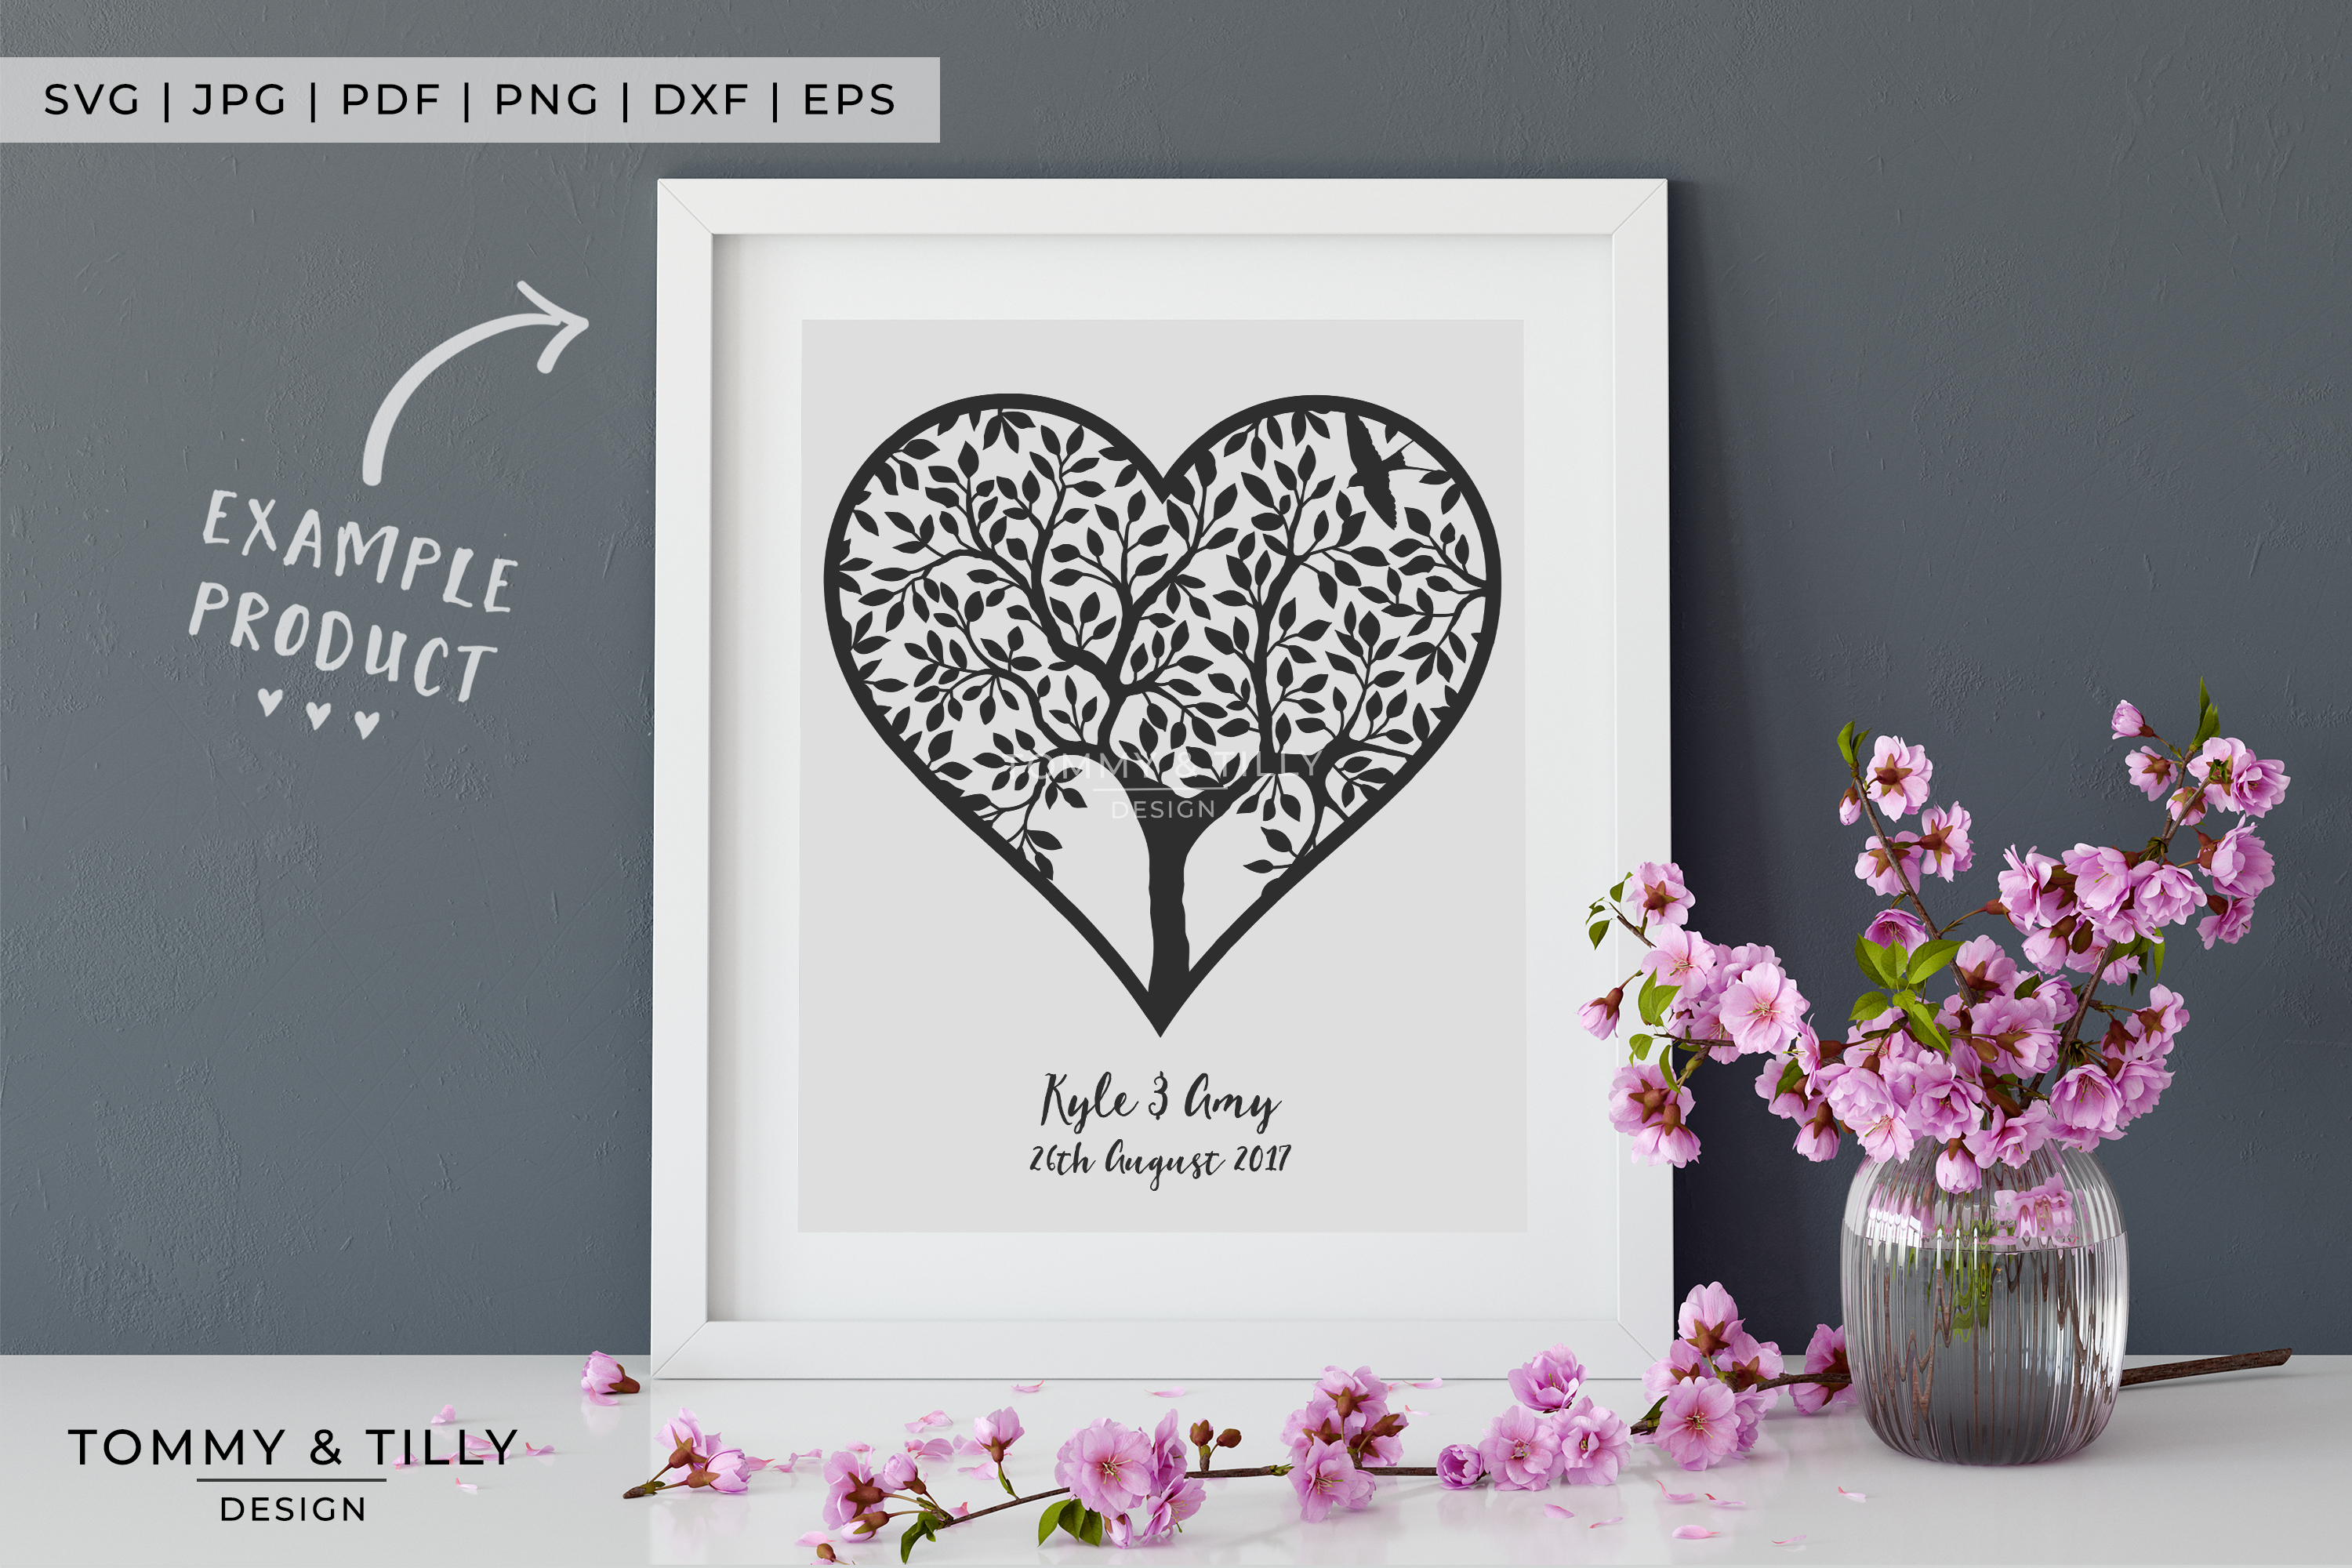 Heart Tree - Papercut Template SVG EPS DXF PNG PDF JPG example image 6